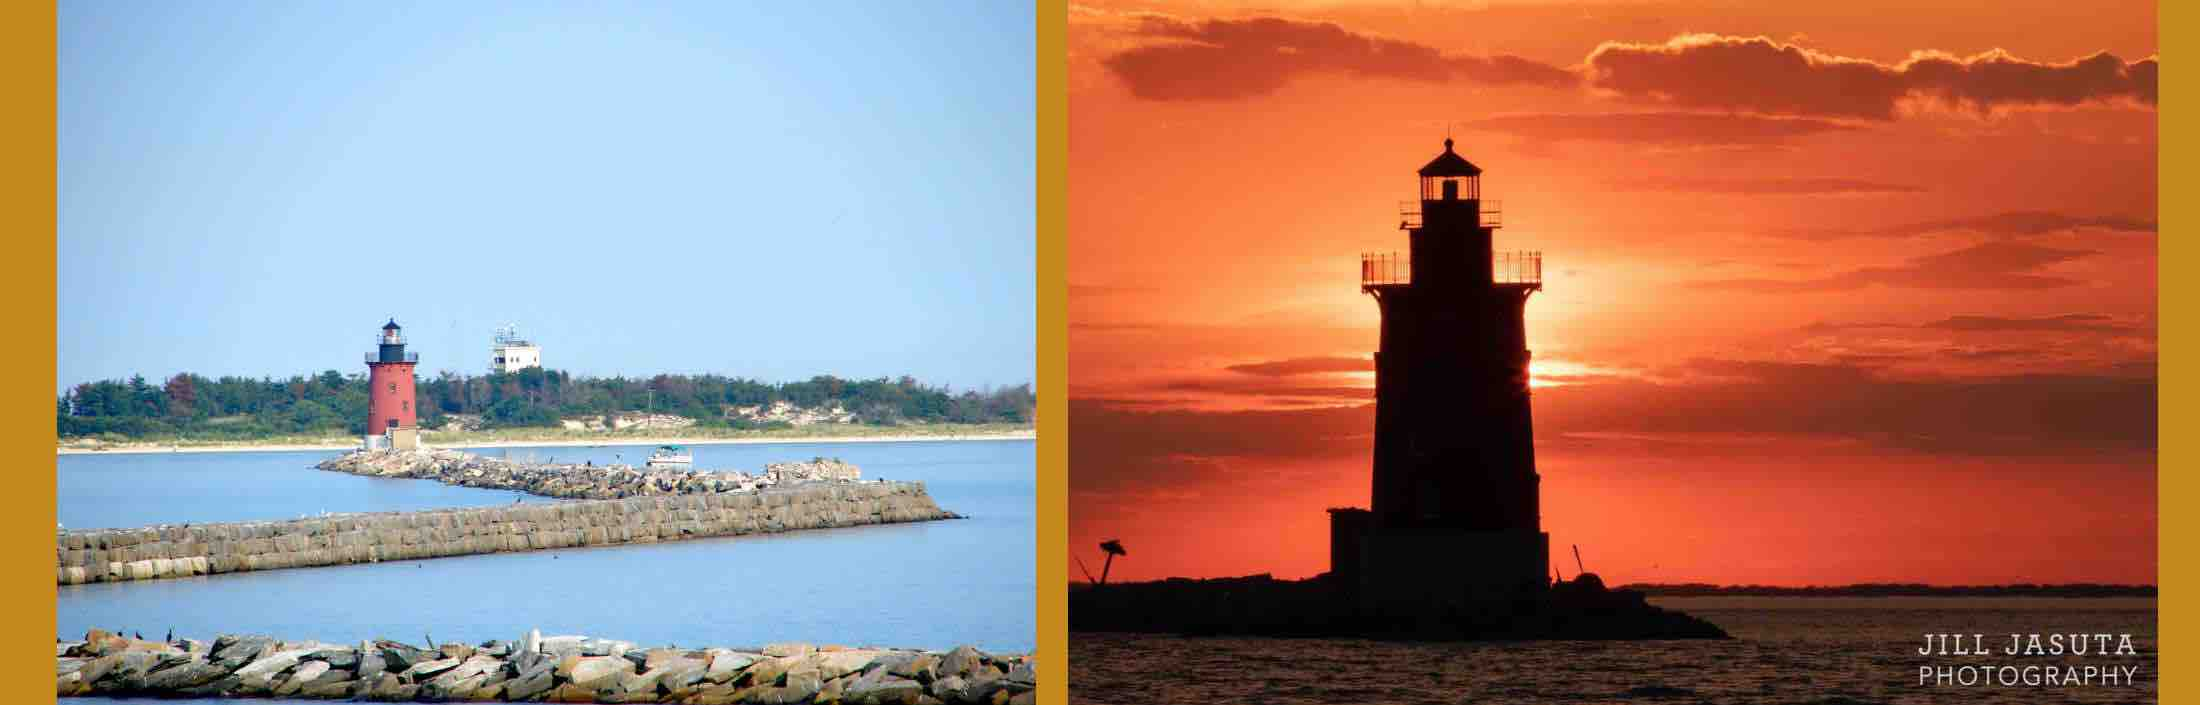 On the Rocks at Cape Henlopen: Breaking New Ground Since the 1800s